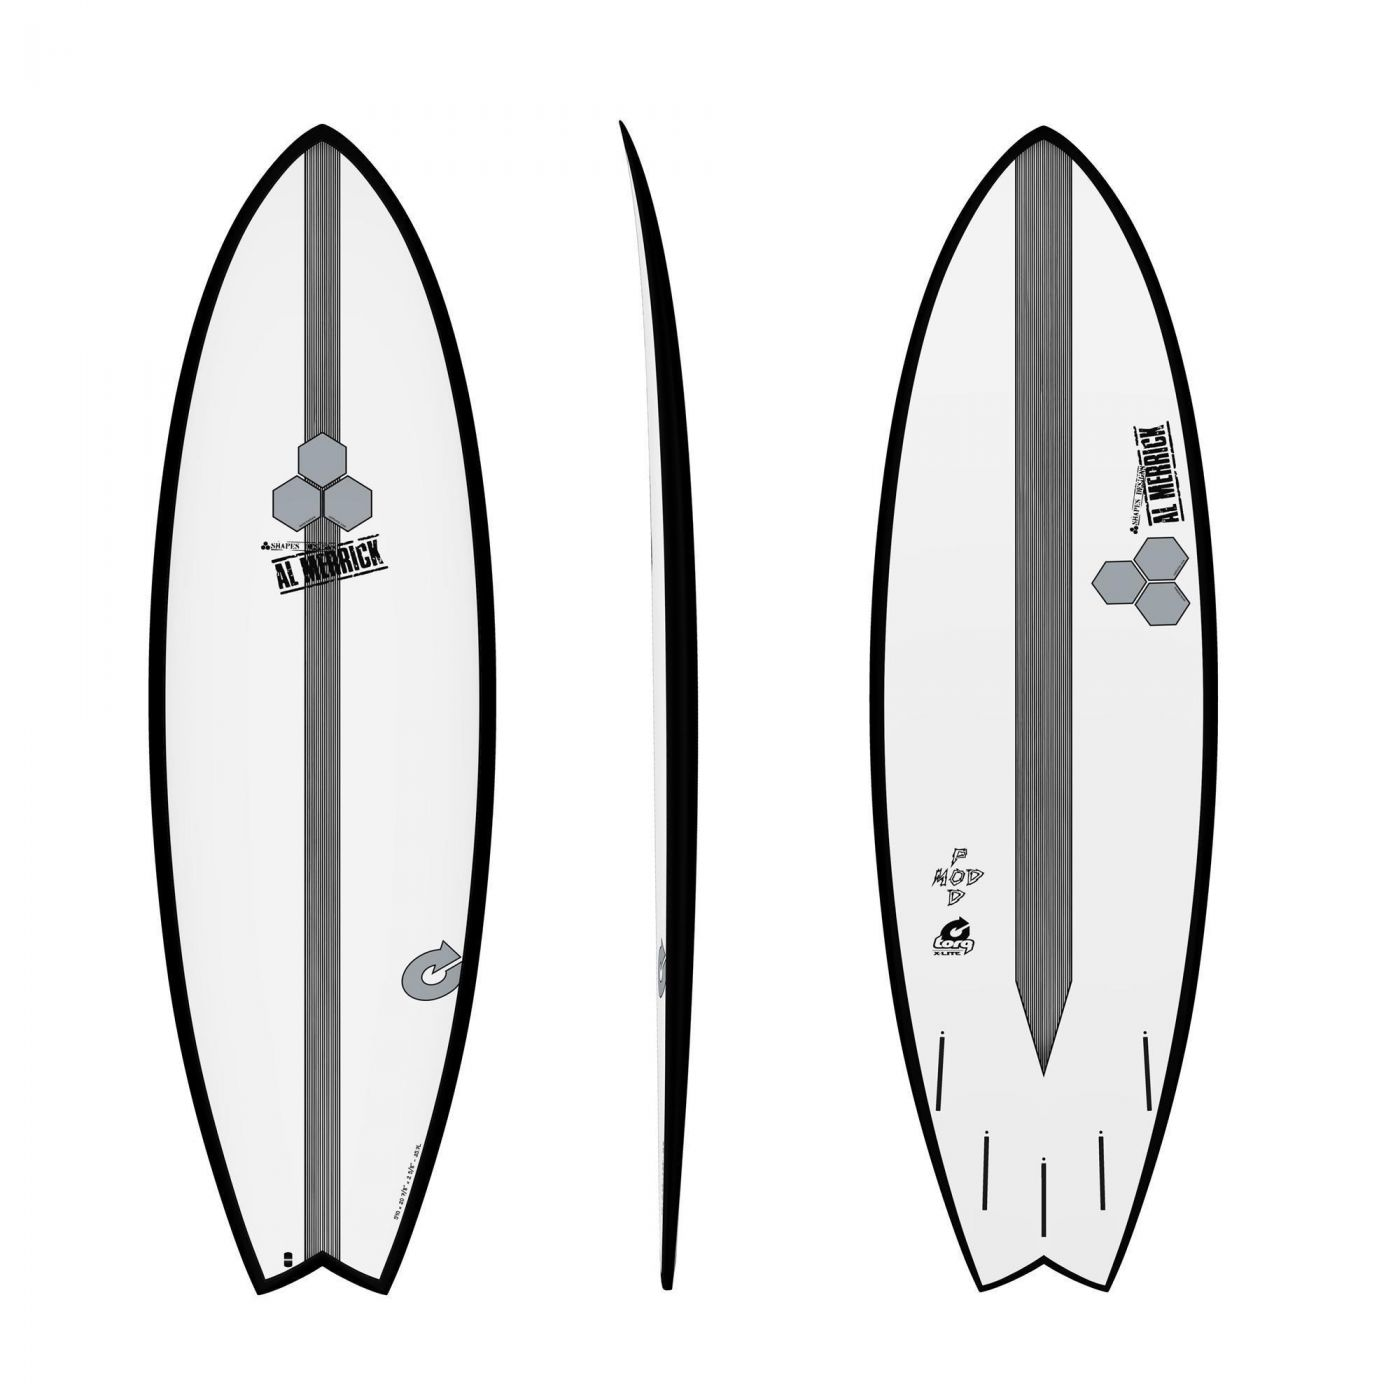 Surfboard CHANNEL ISLANDS X-lite Pod Mod 5.10 blac